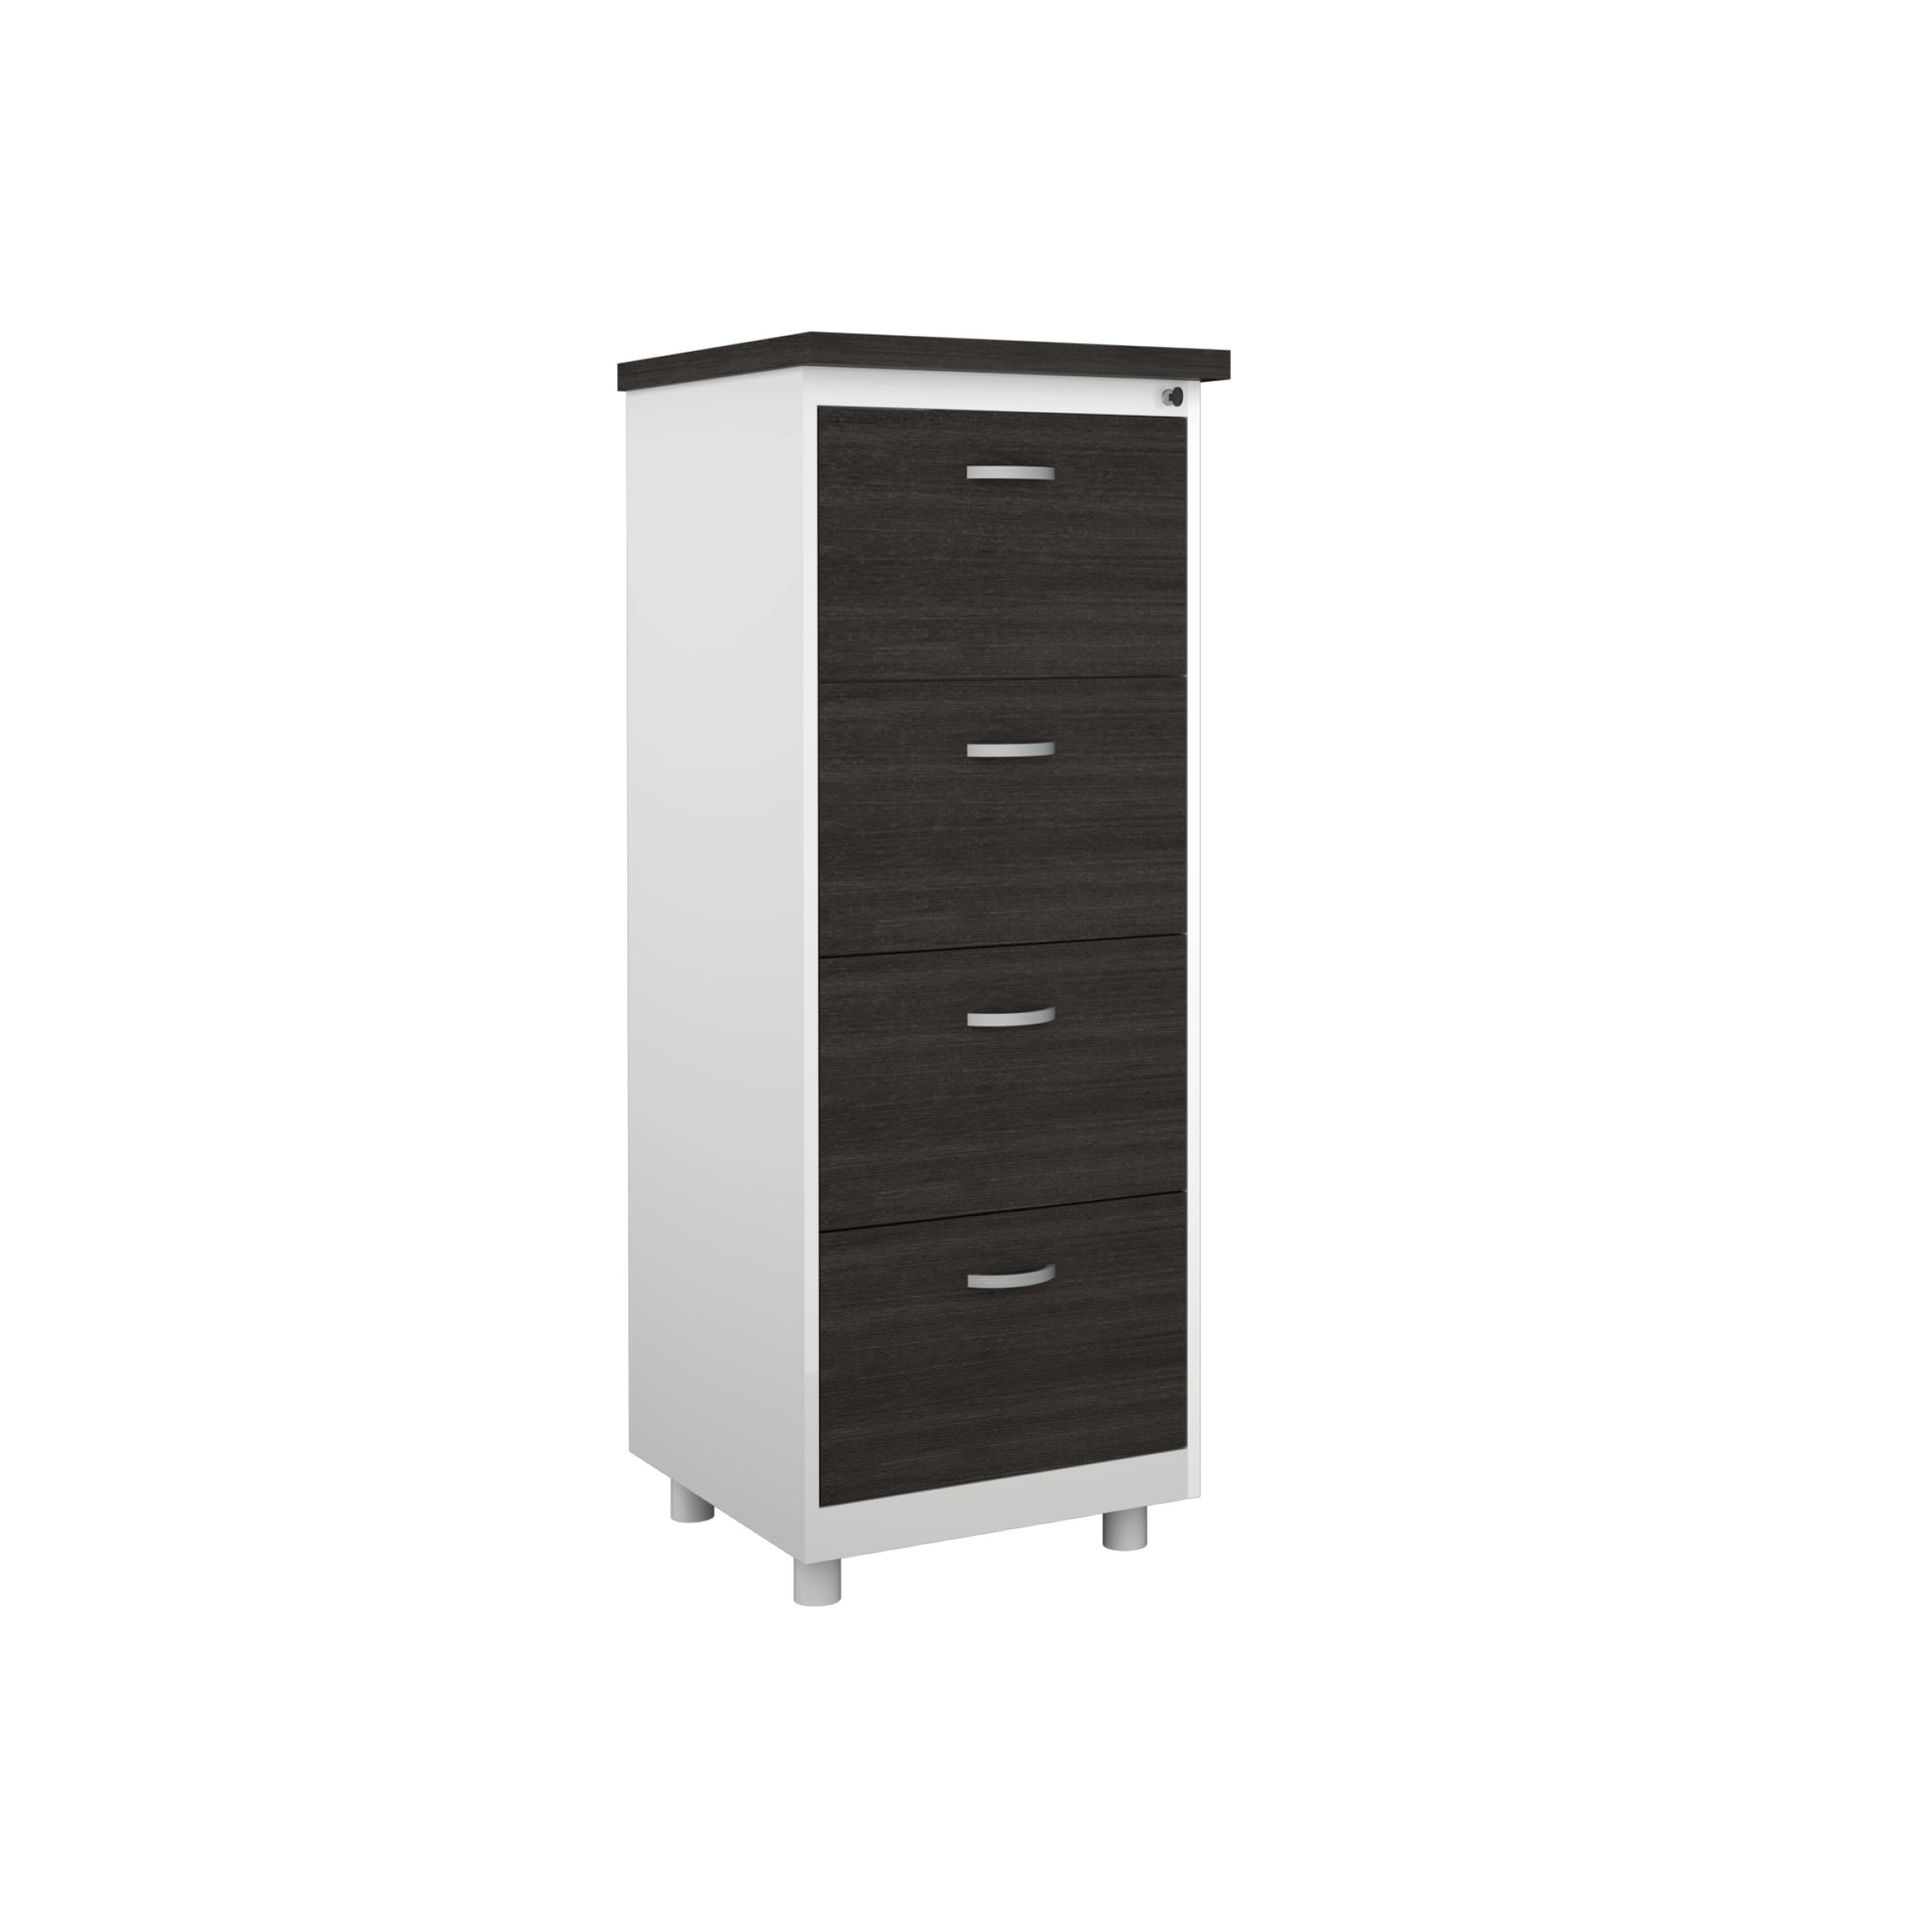 Hedcor Amethyst filing cabinet